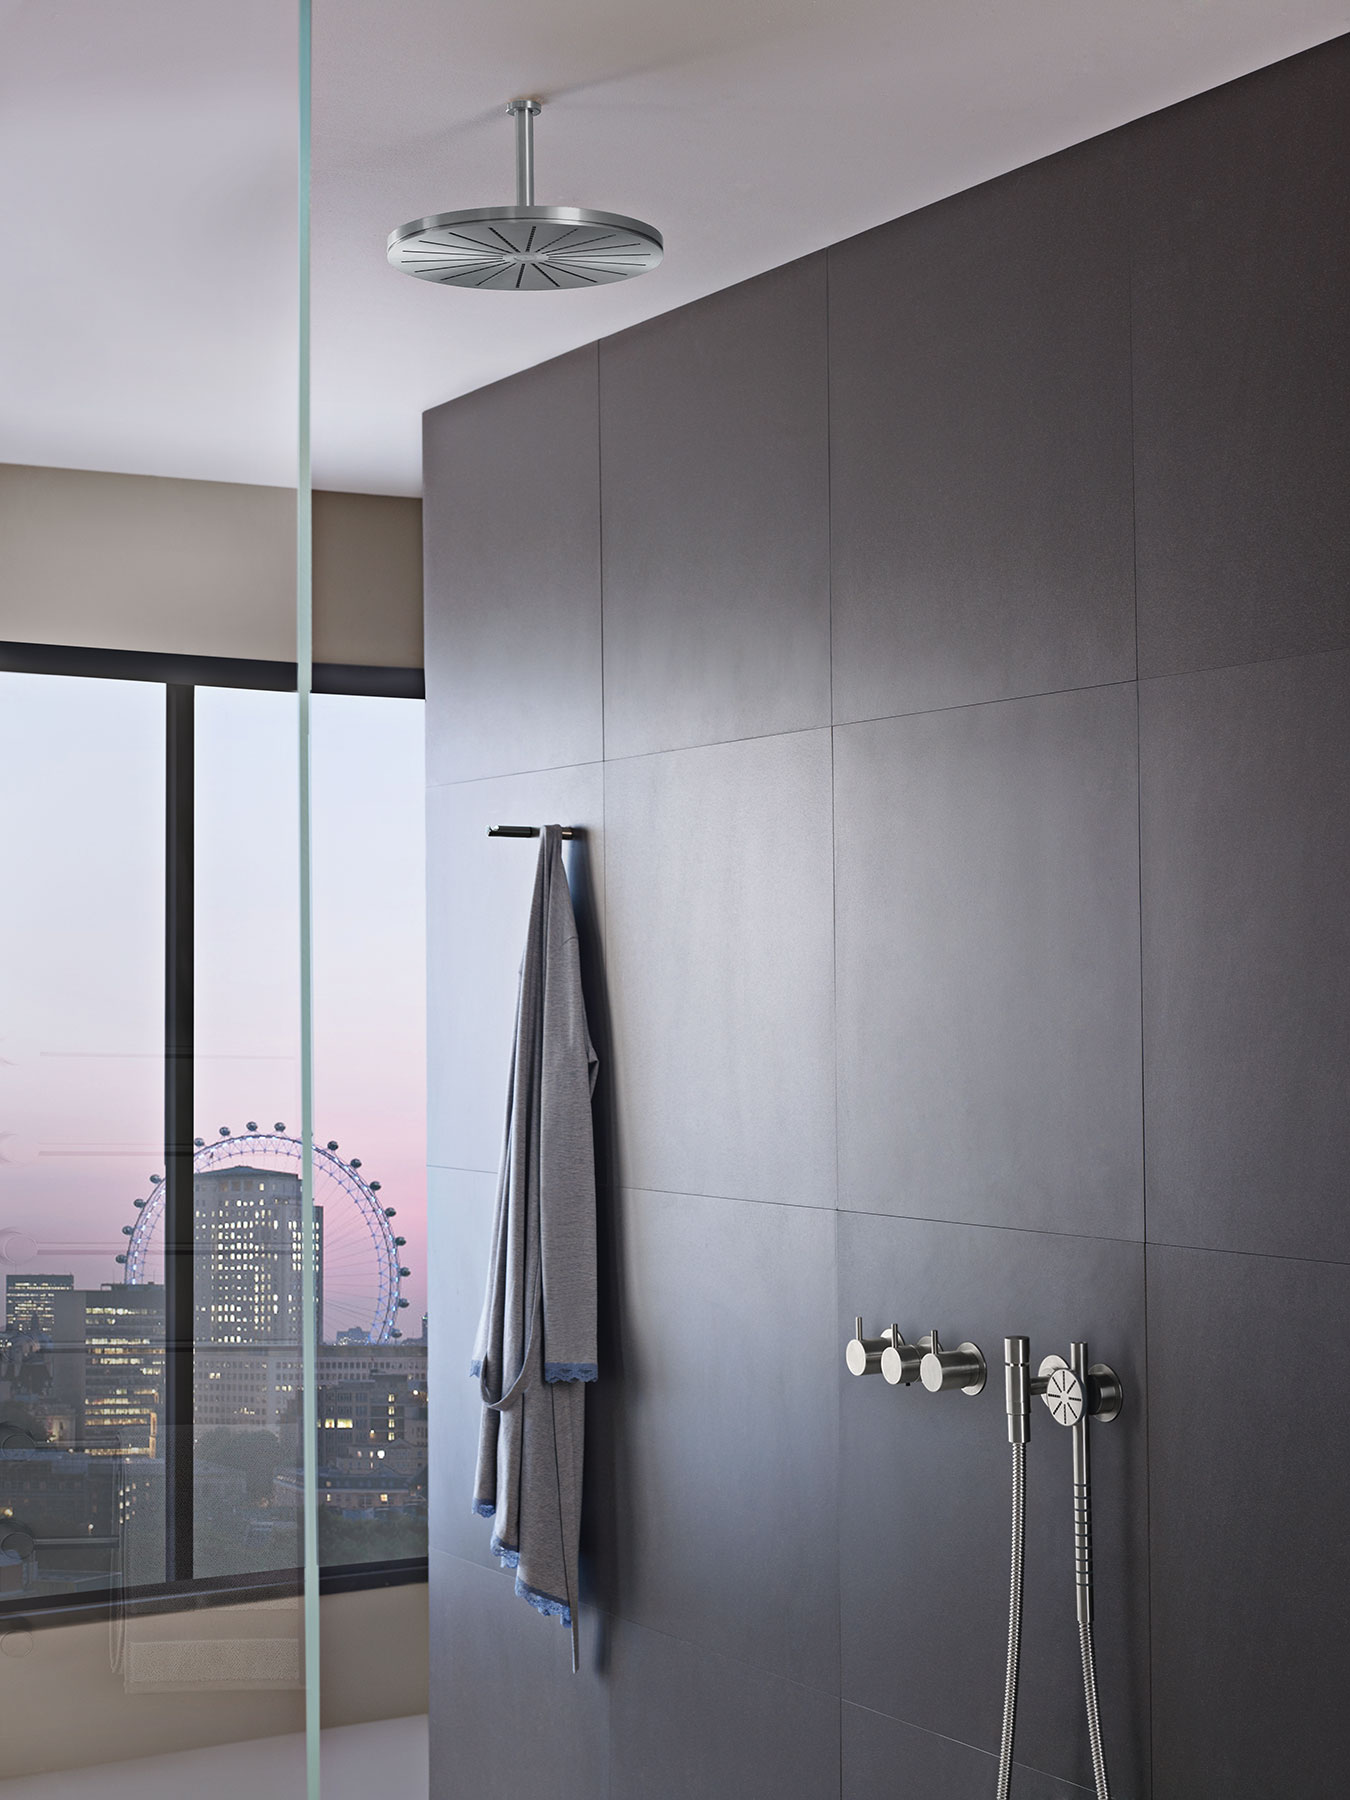 Transitional Vola Wall Mount Shower Set